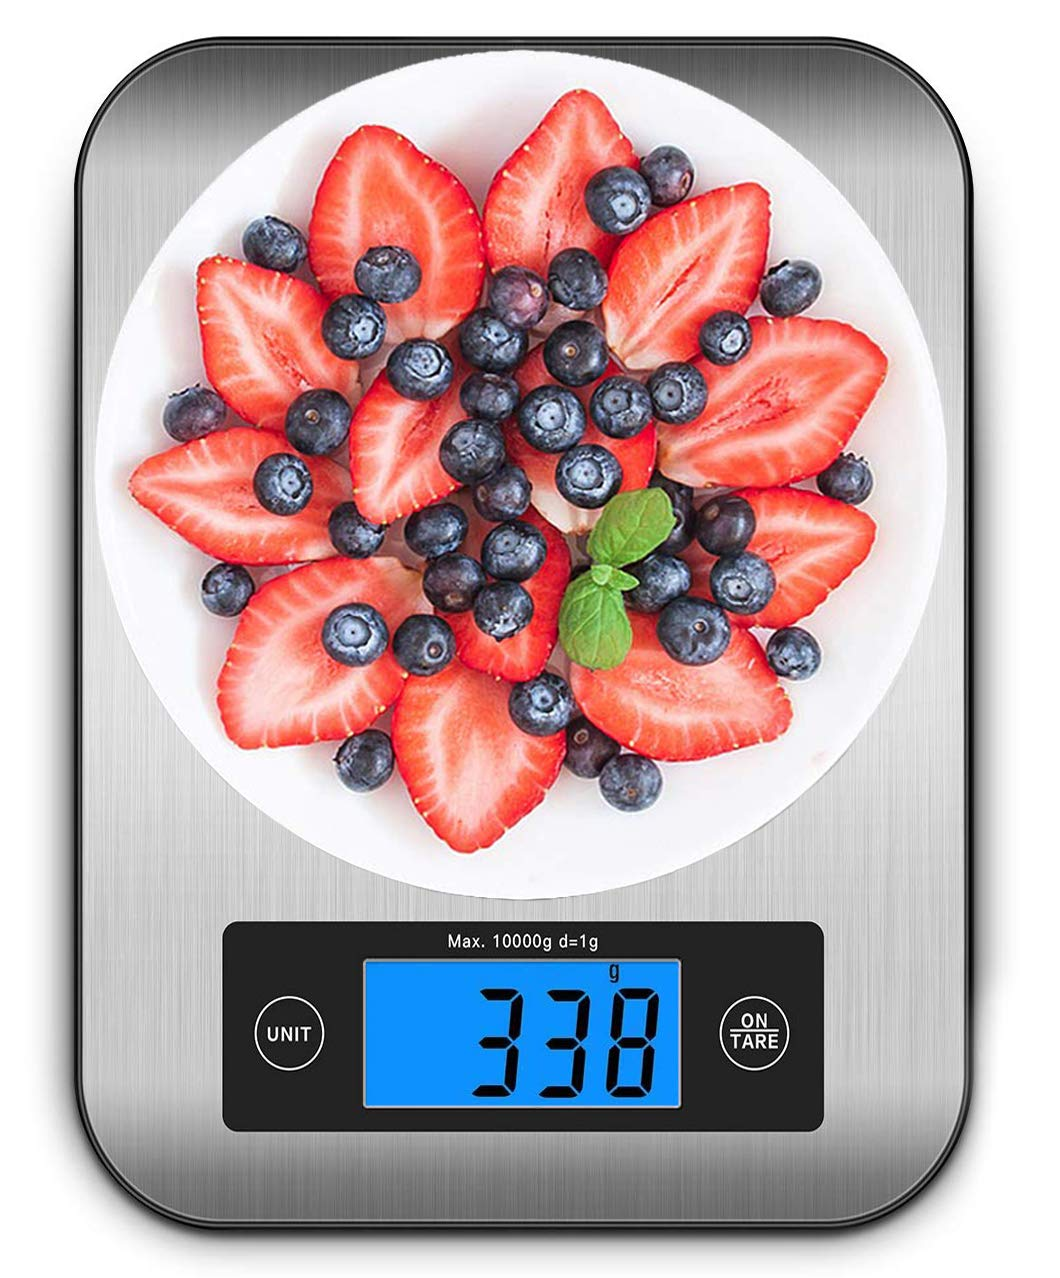 Ataller Digital Kitchen Scales, Multifunction Food Scale, 22 lb 10 kg, Silver, Stainless Steel, Backlight LCD Display, Tare Function, Auto Power Off (Batteries Included)